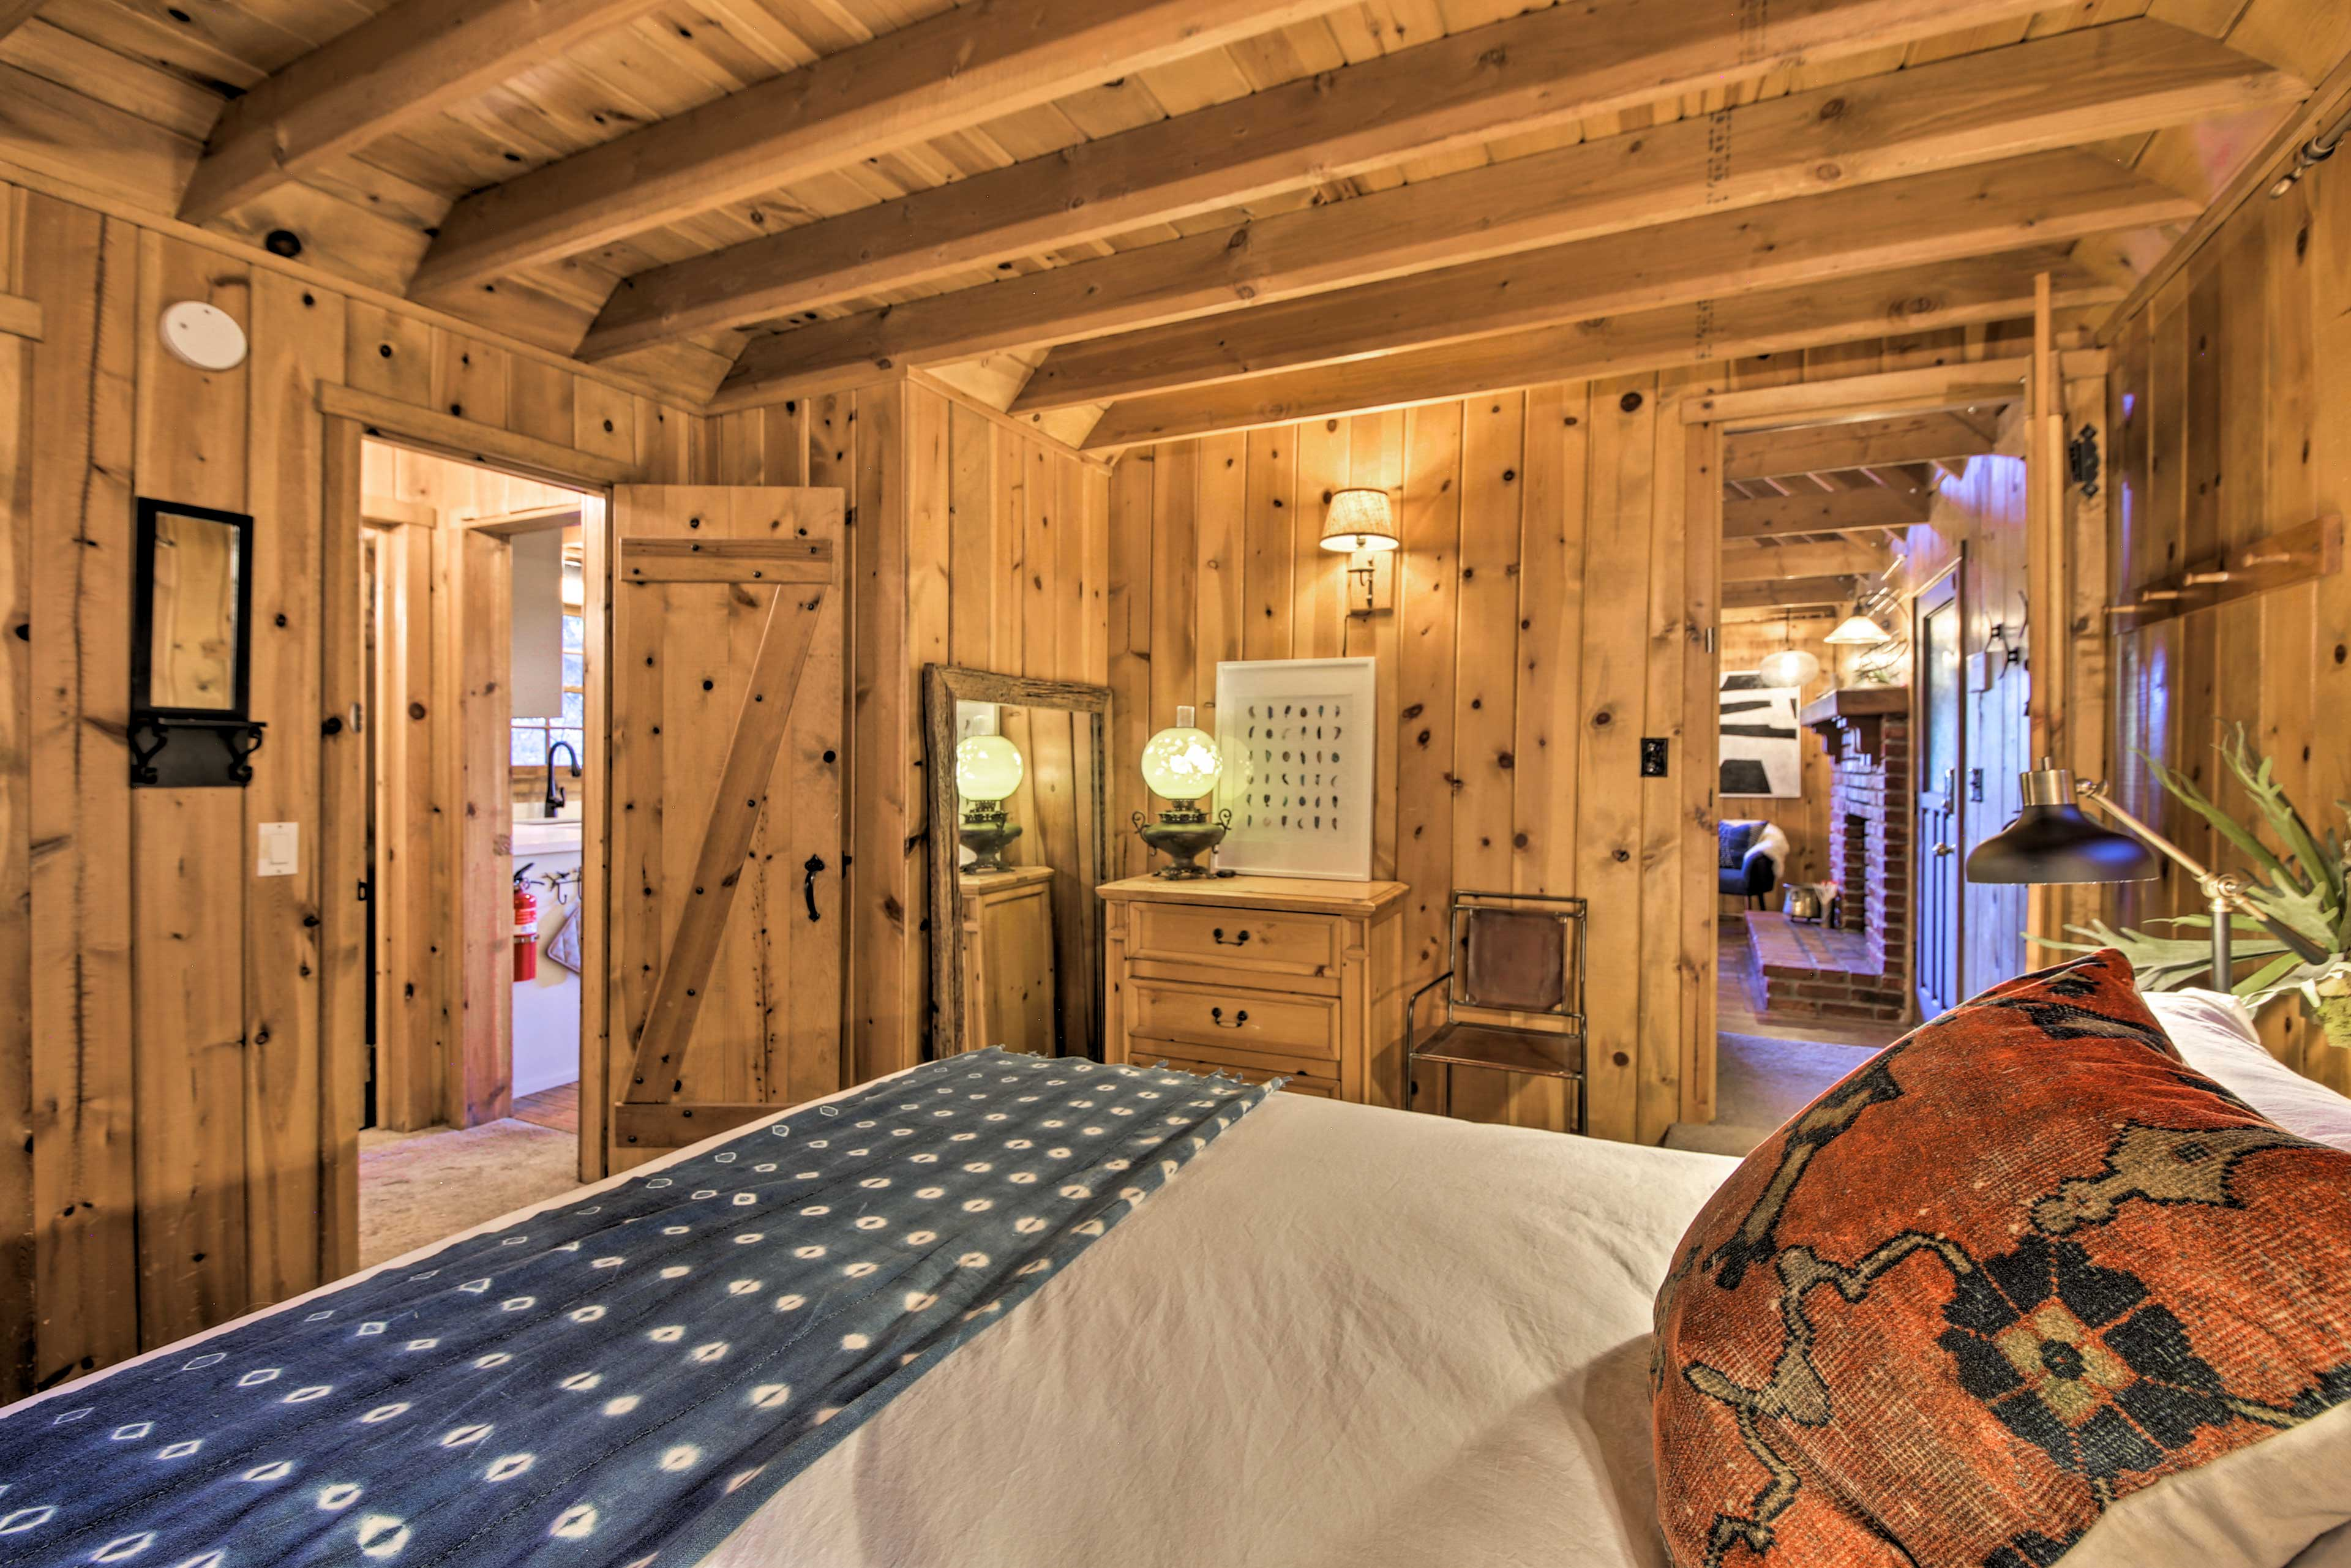 With central heat, you're sure to feel at home in this cozy cabin.